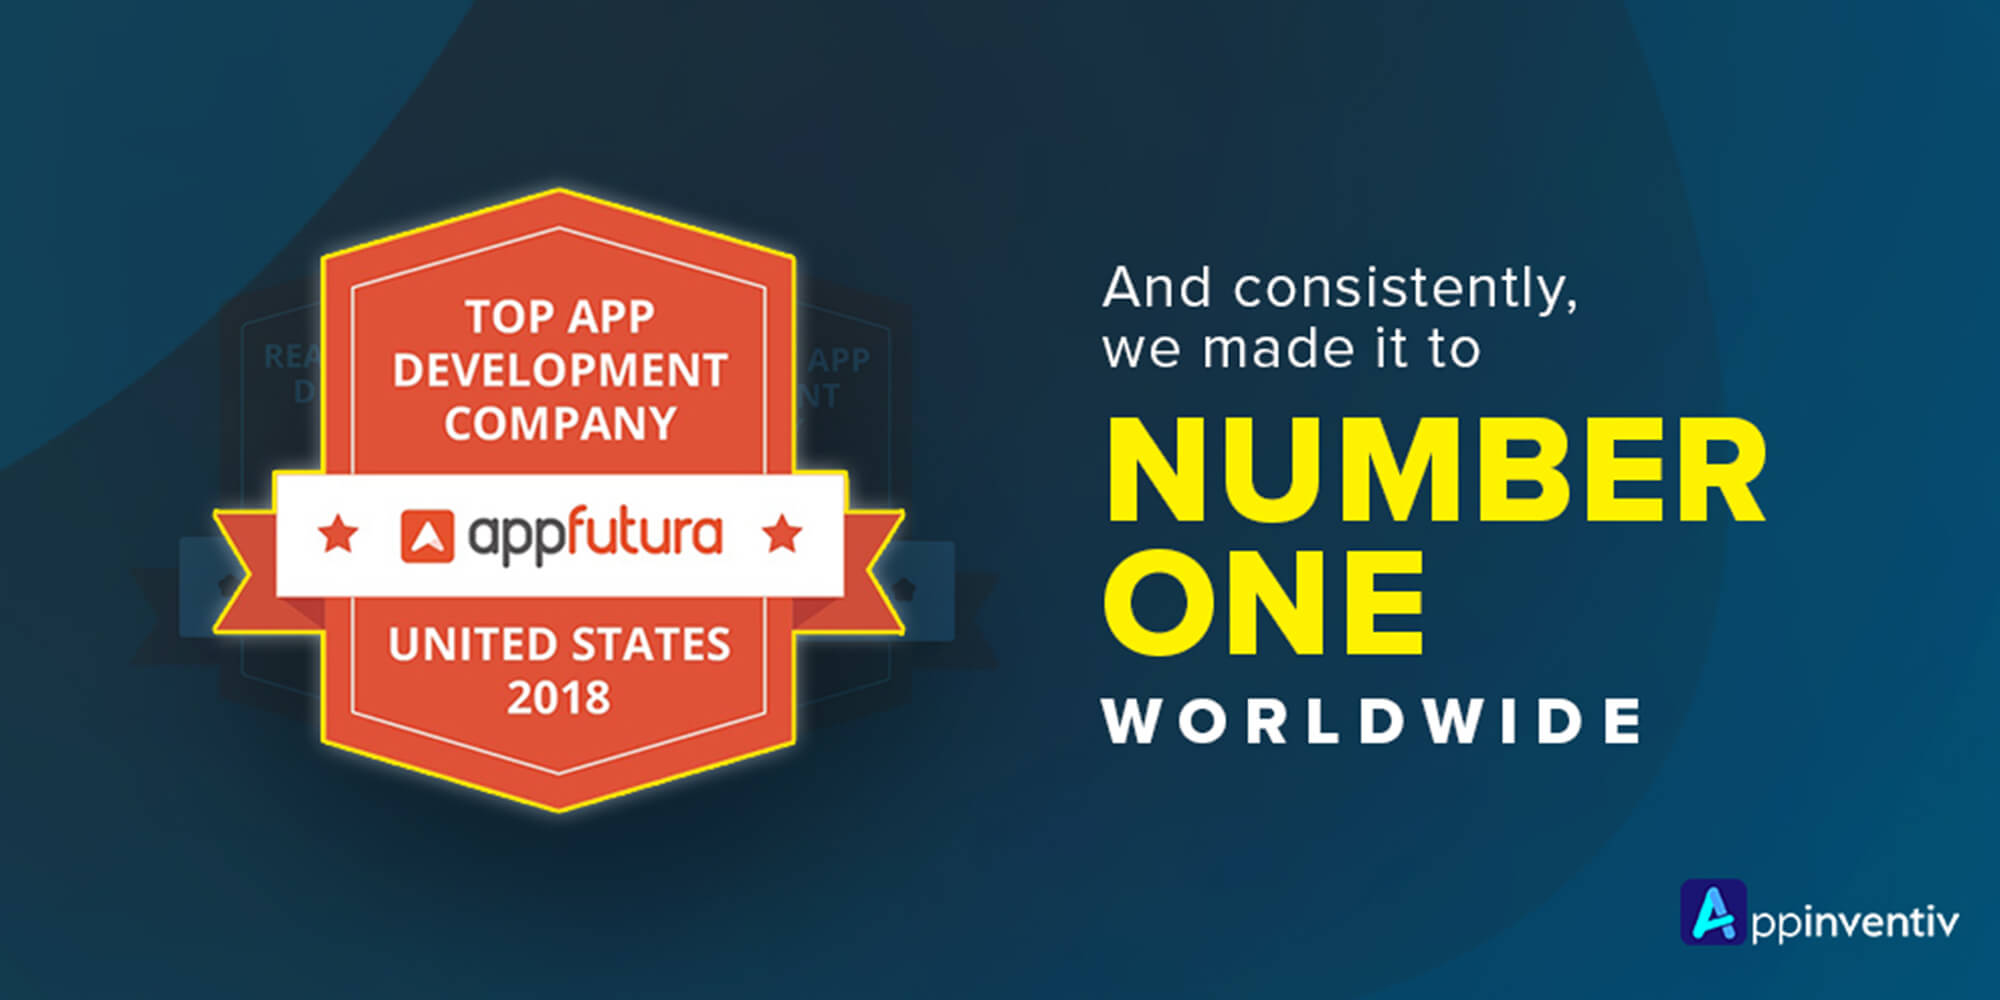 amlirAppinventiv Ranked Number 1 Mobile App Development Company in the World